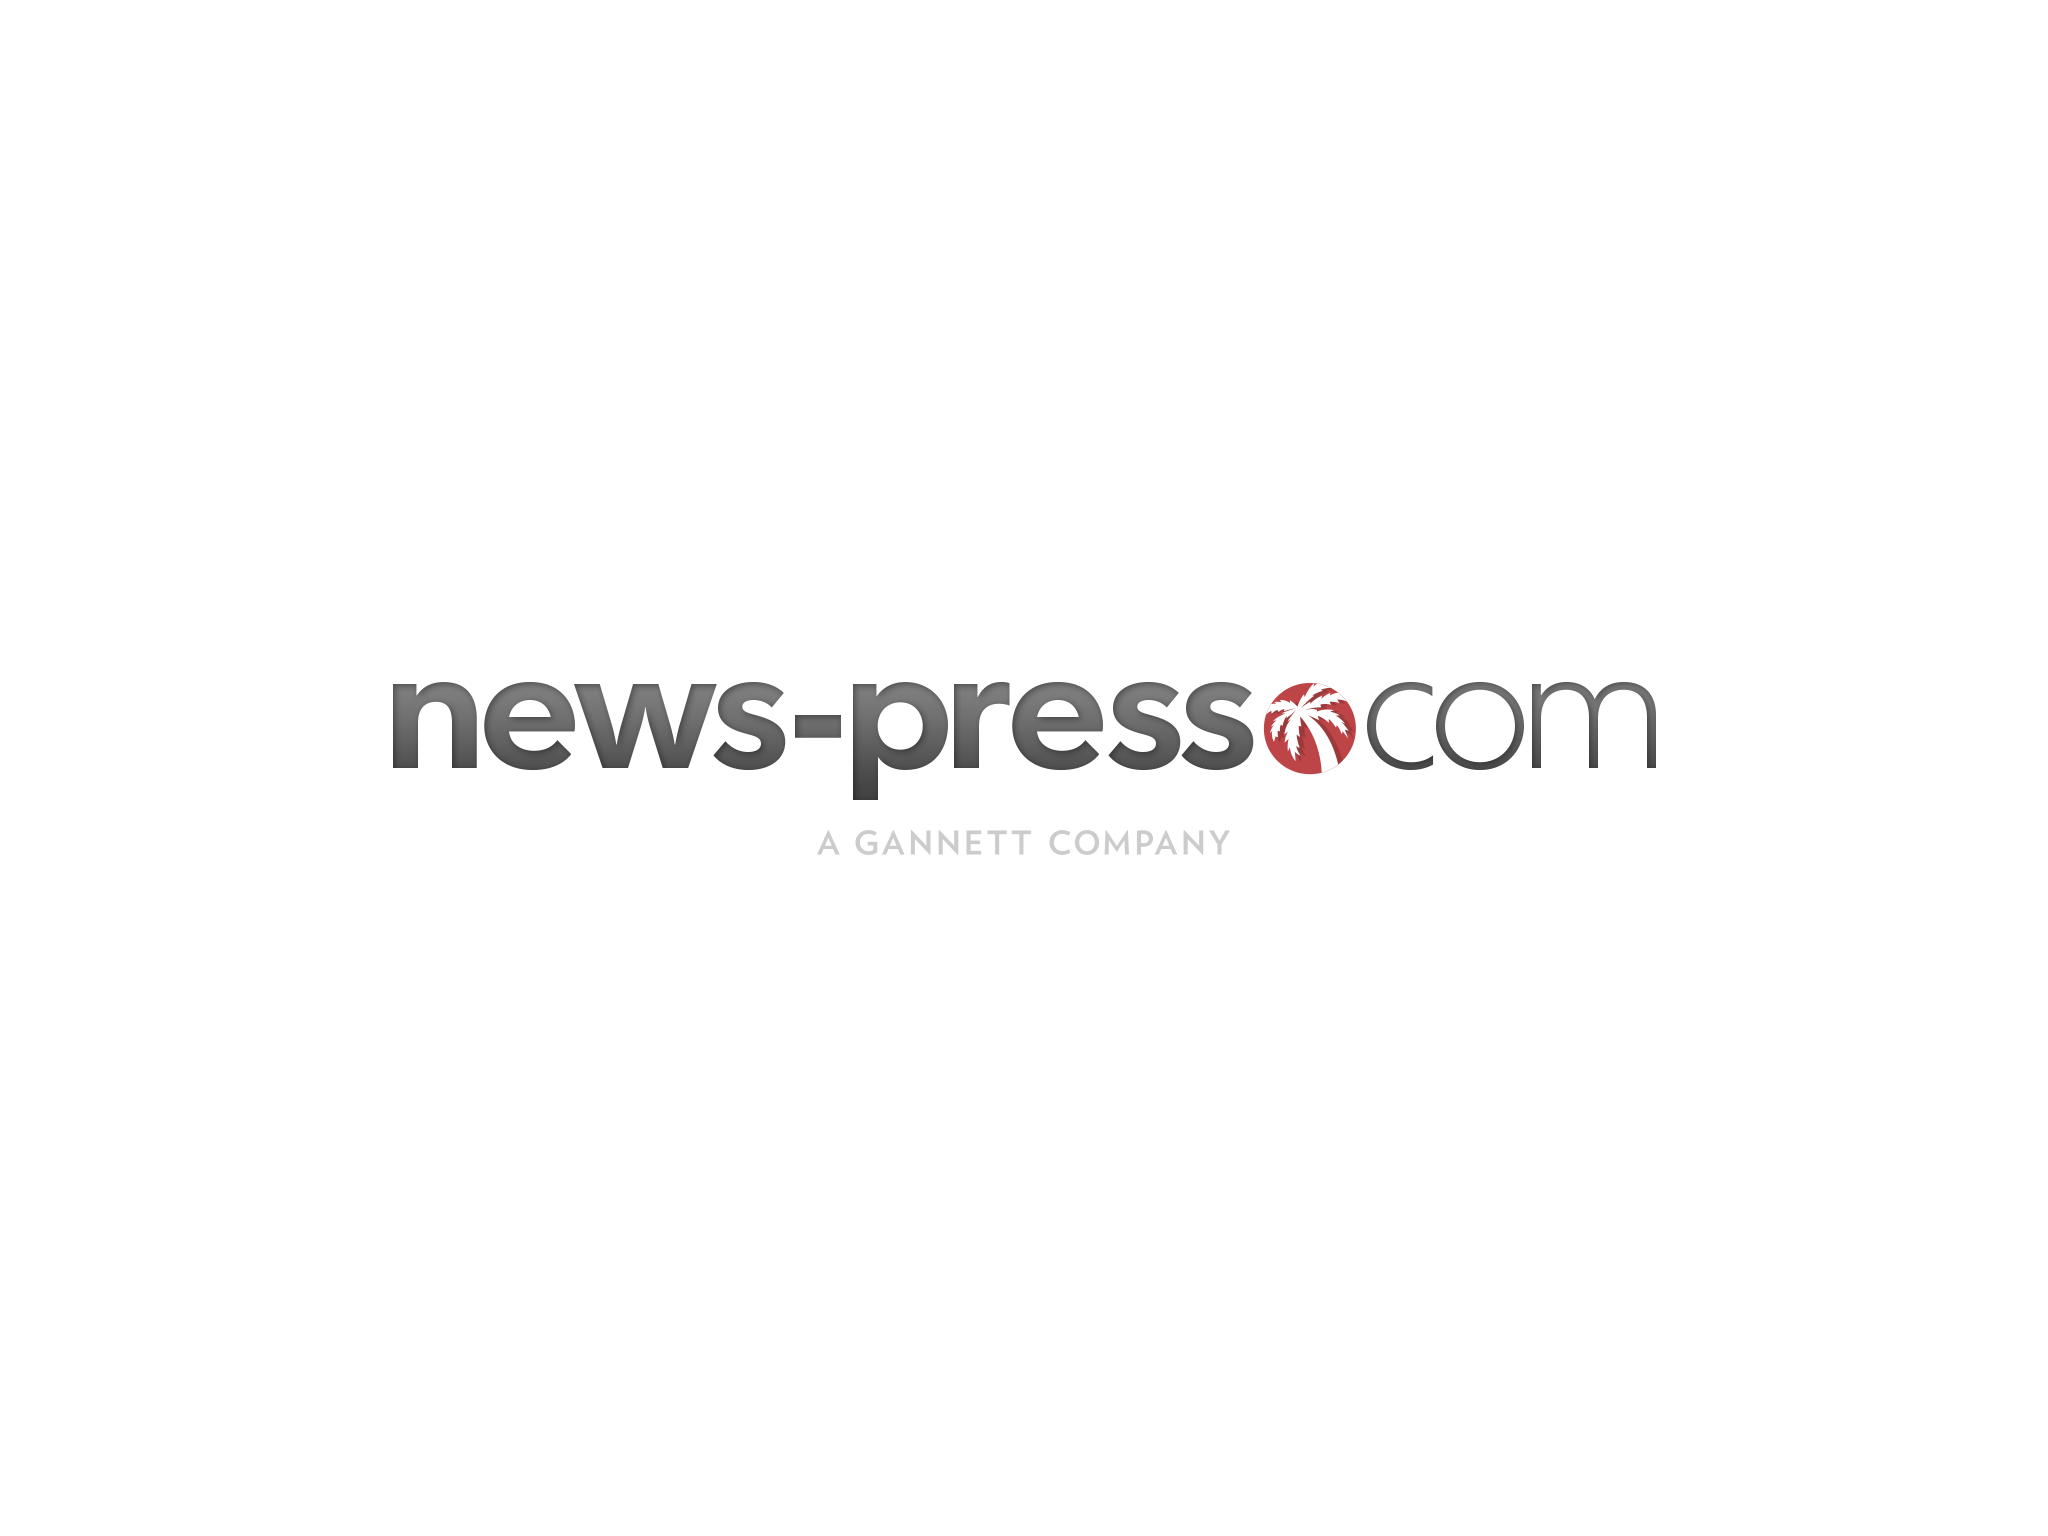 Download the new, free iPhone, iPad and Android apps for news-press com